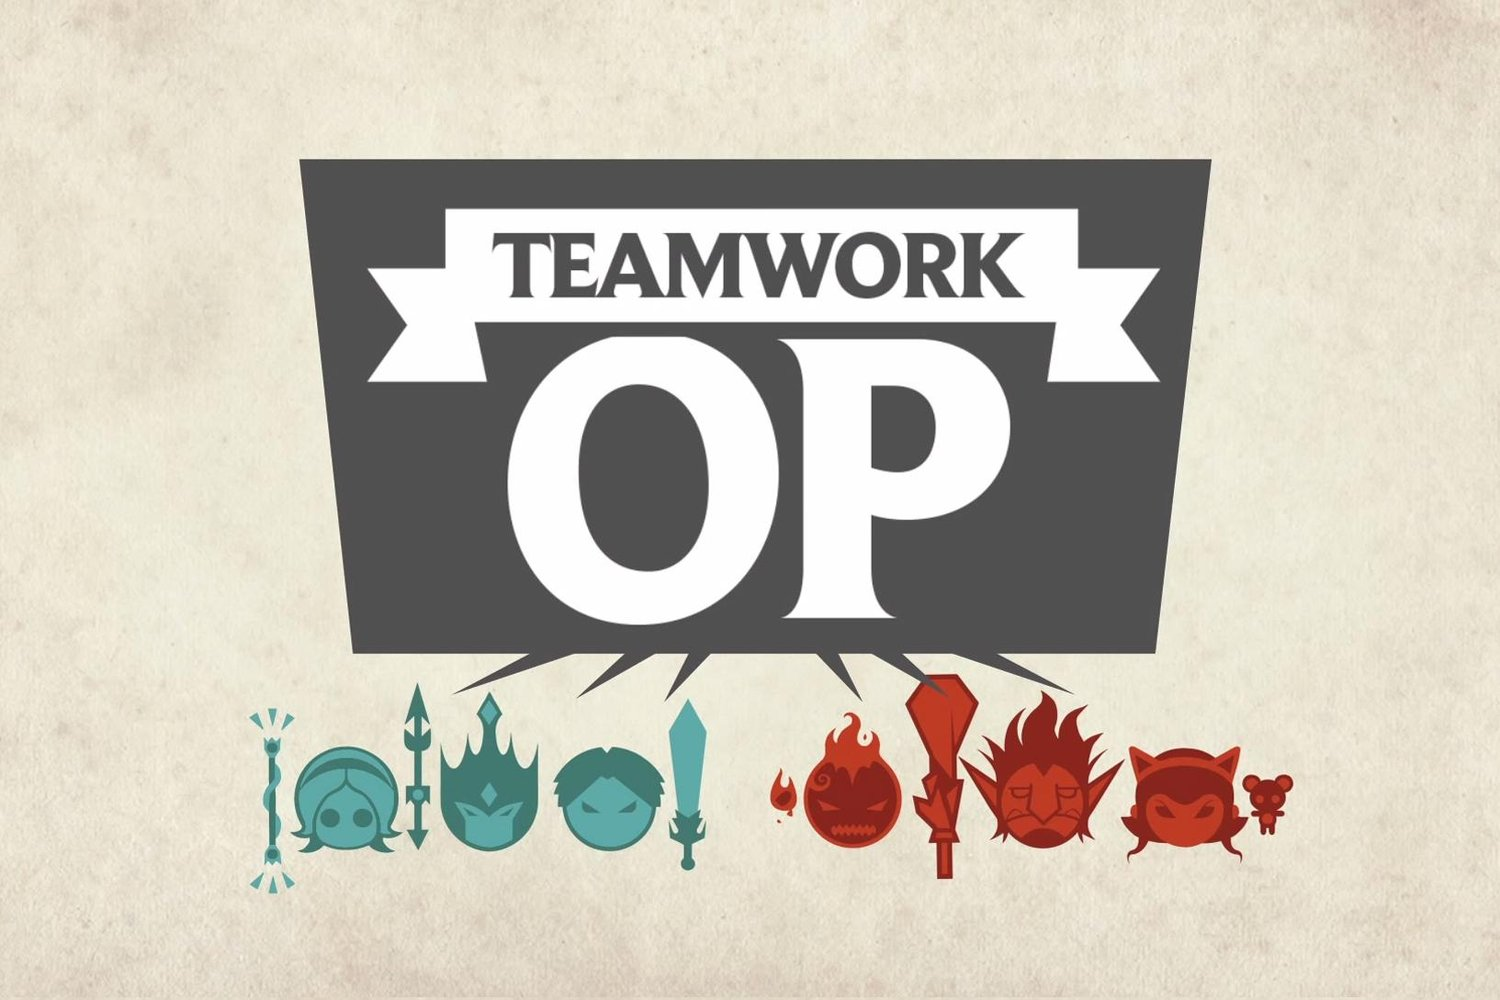 teamwork-op-riot-on-making-good-the-easy-choice